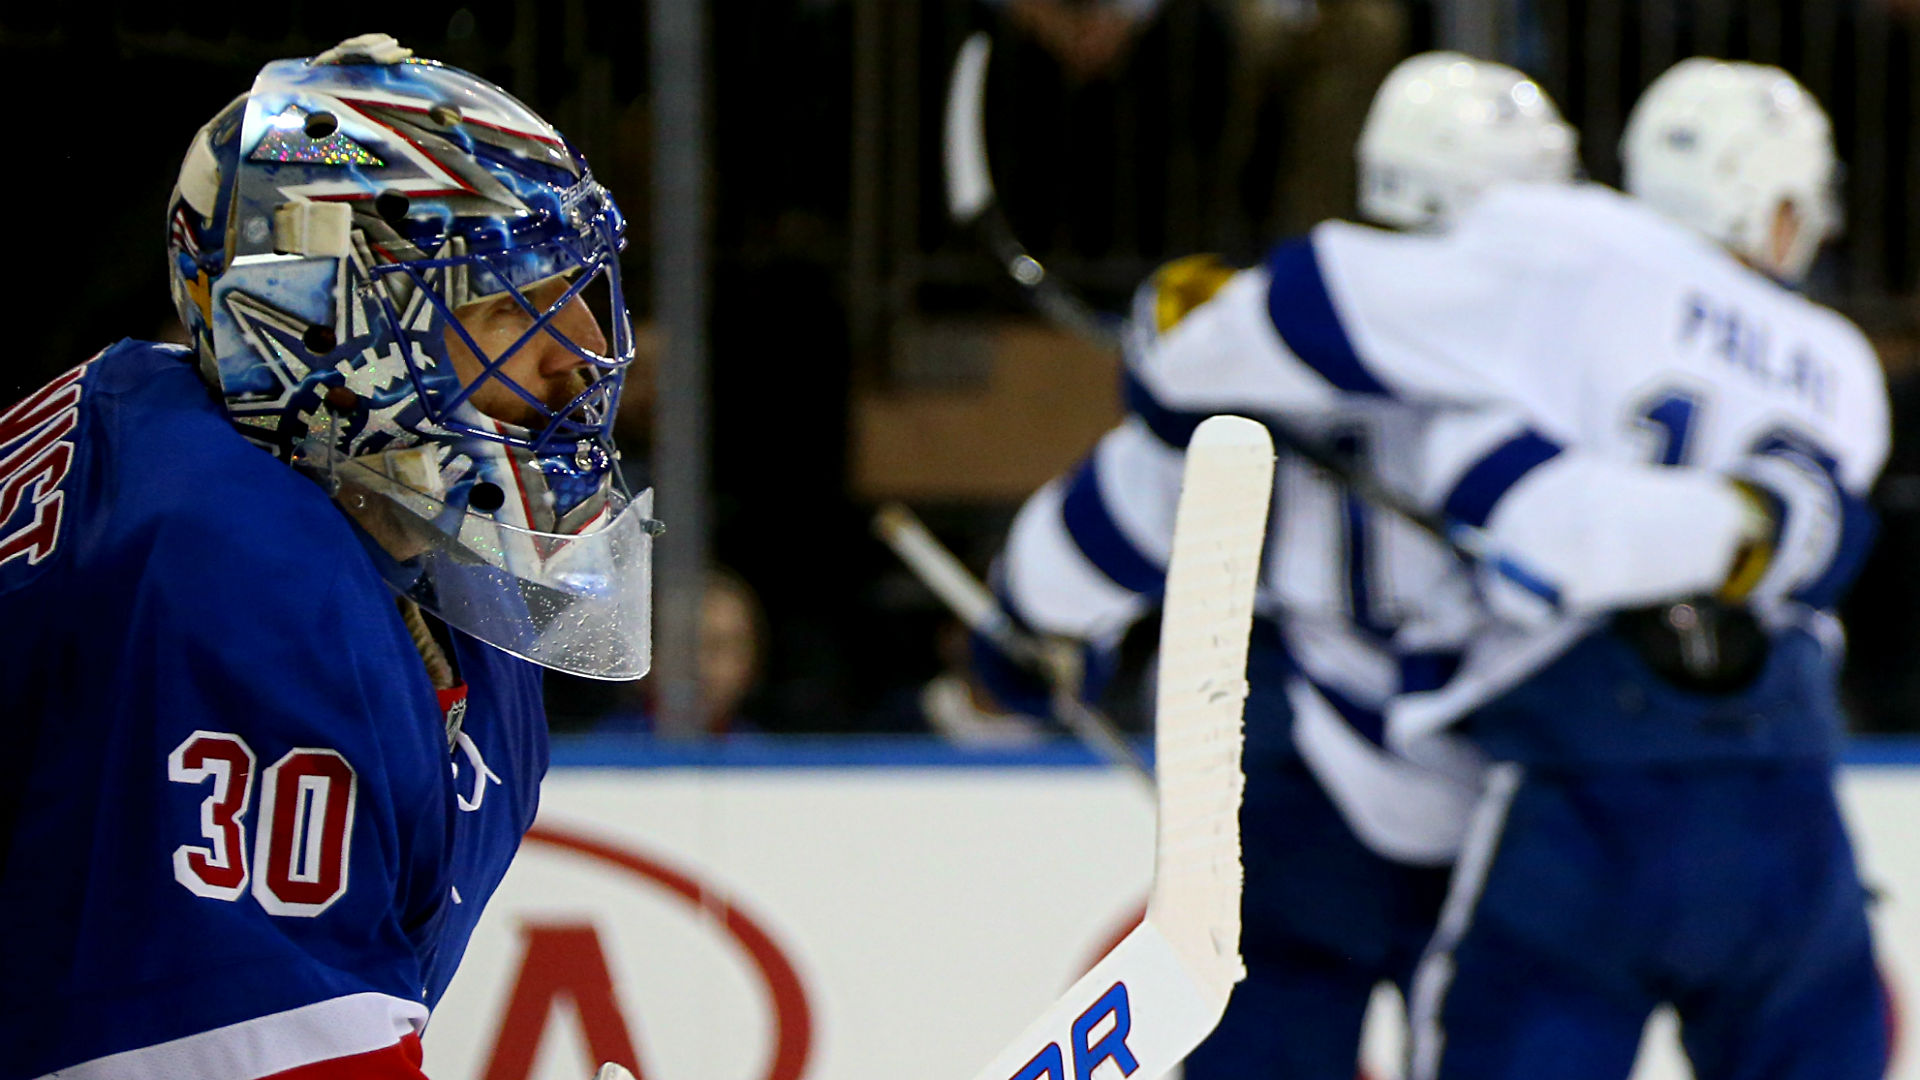 Lightning vs. Rangers odds and betting analysis — Another Game 7 at the Garden